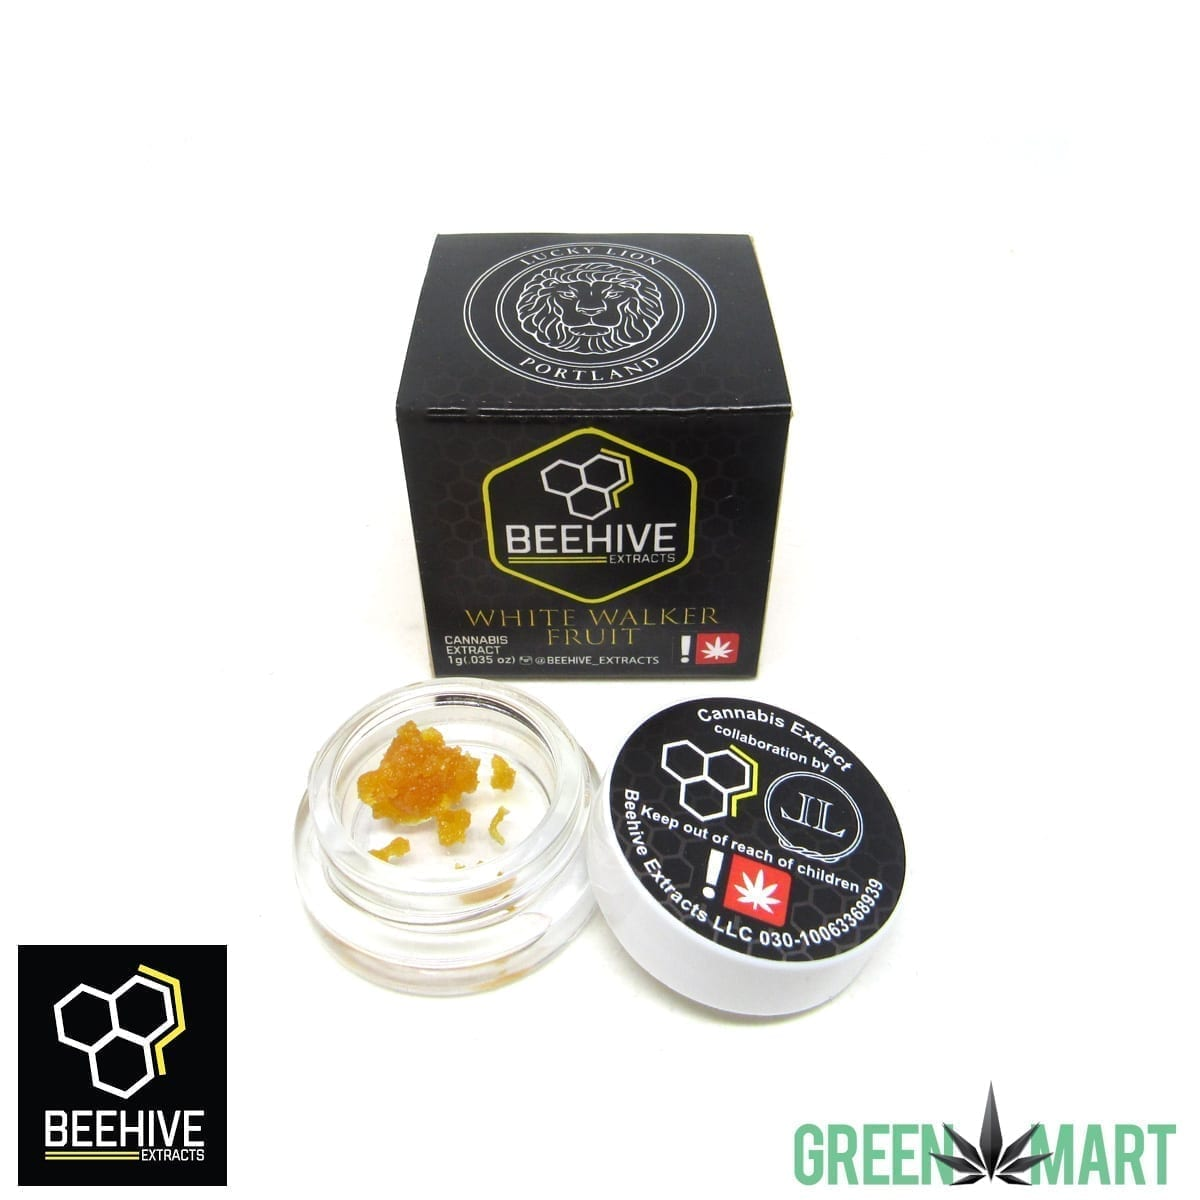 Bee Hive Extracts - White Walker Fruit